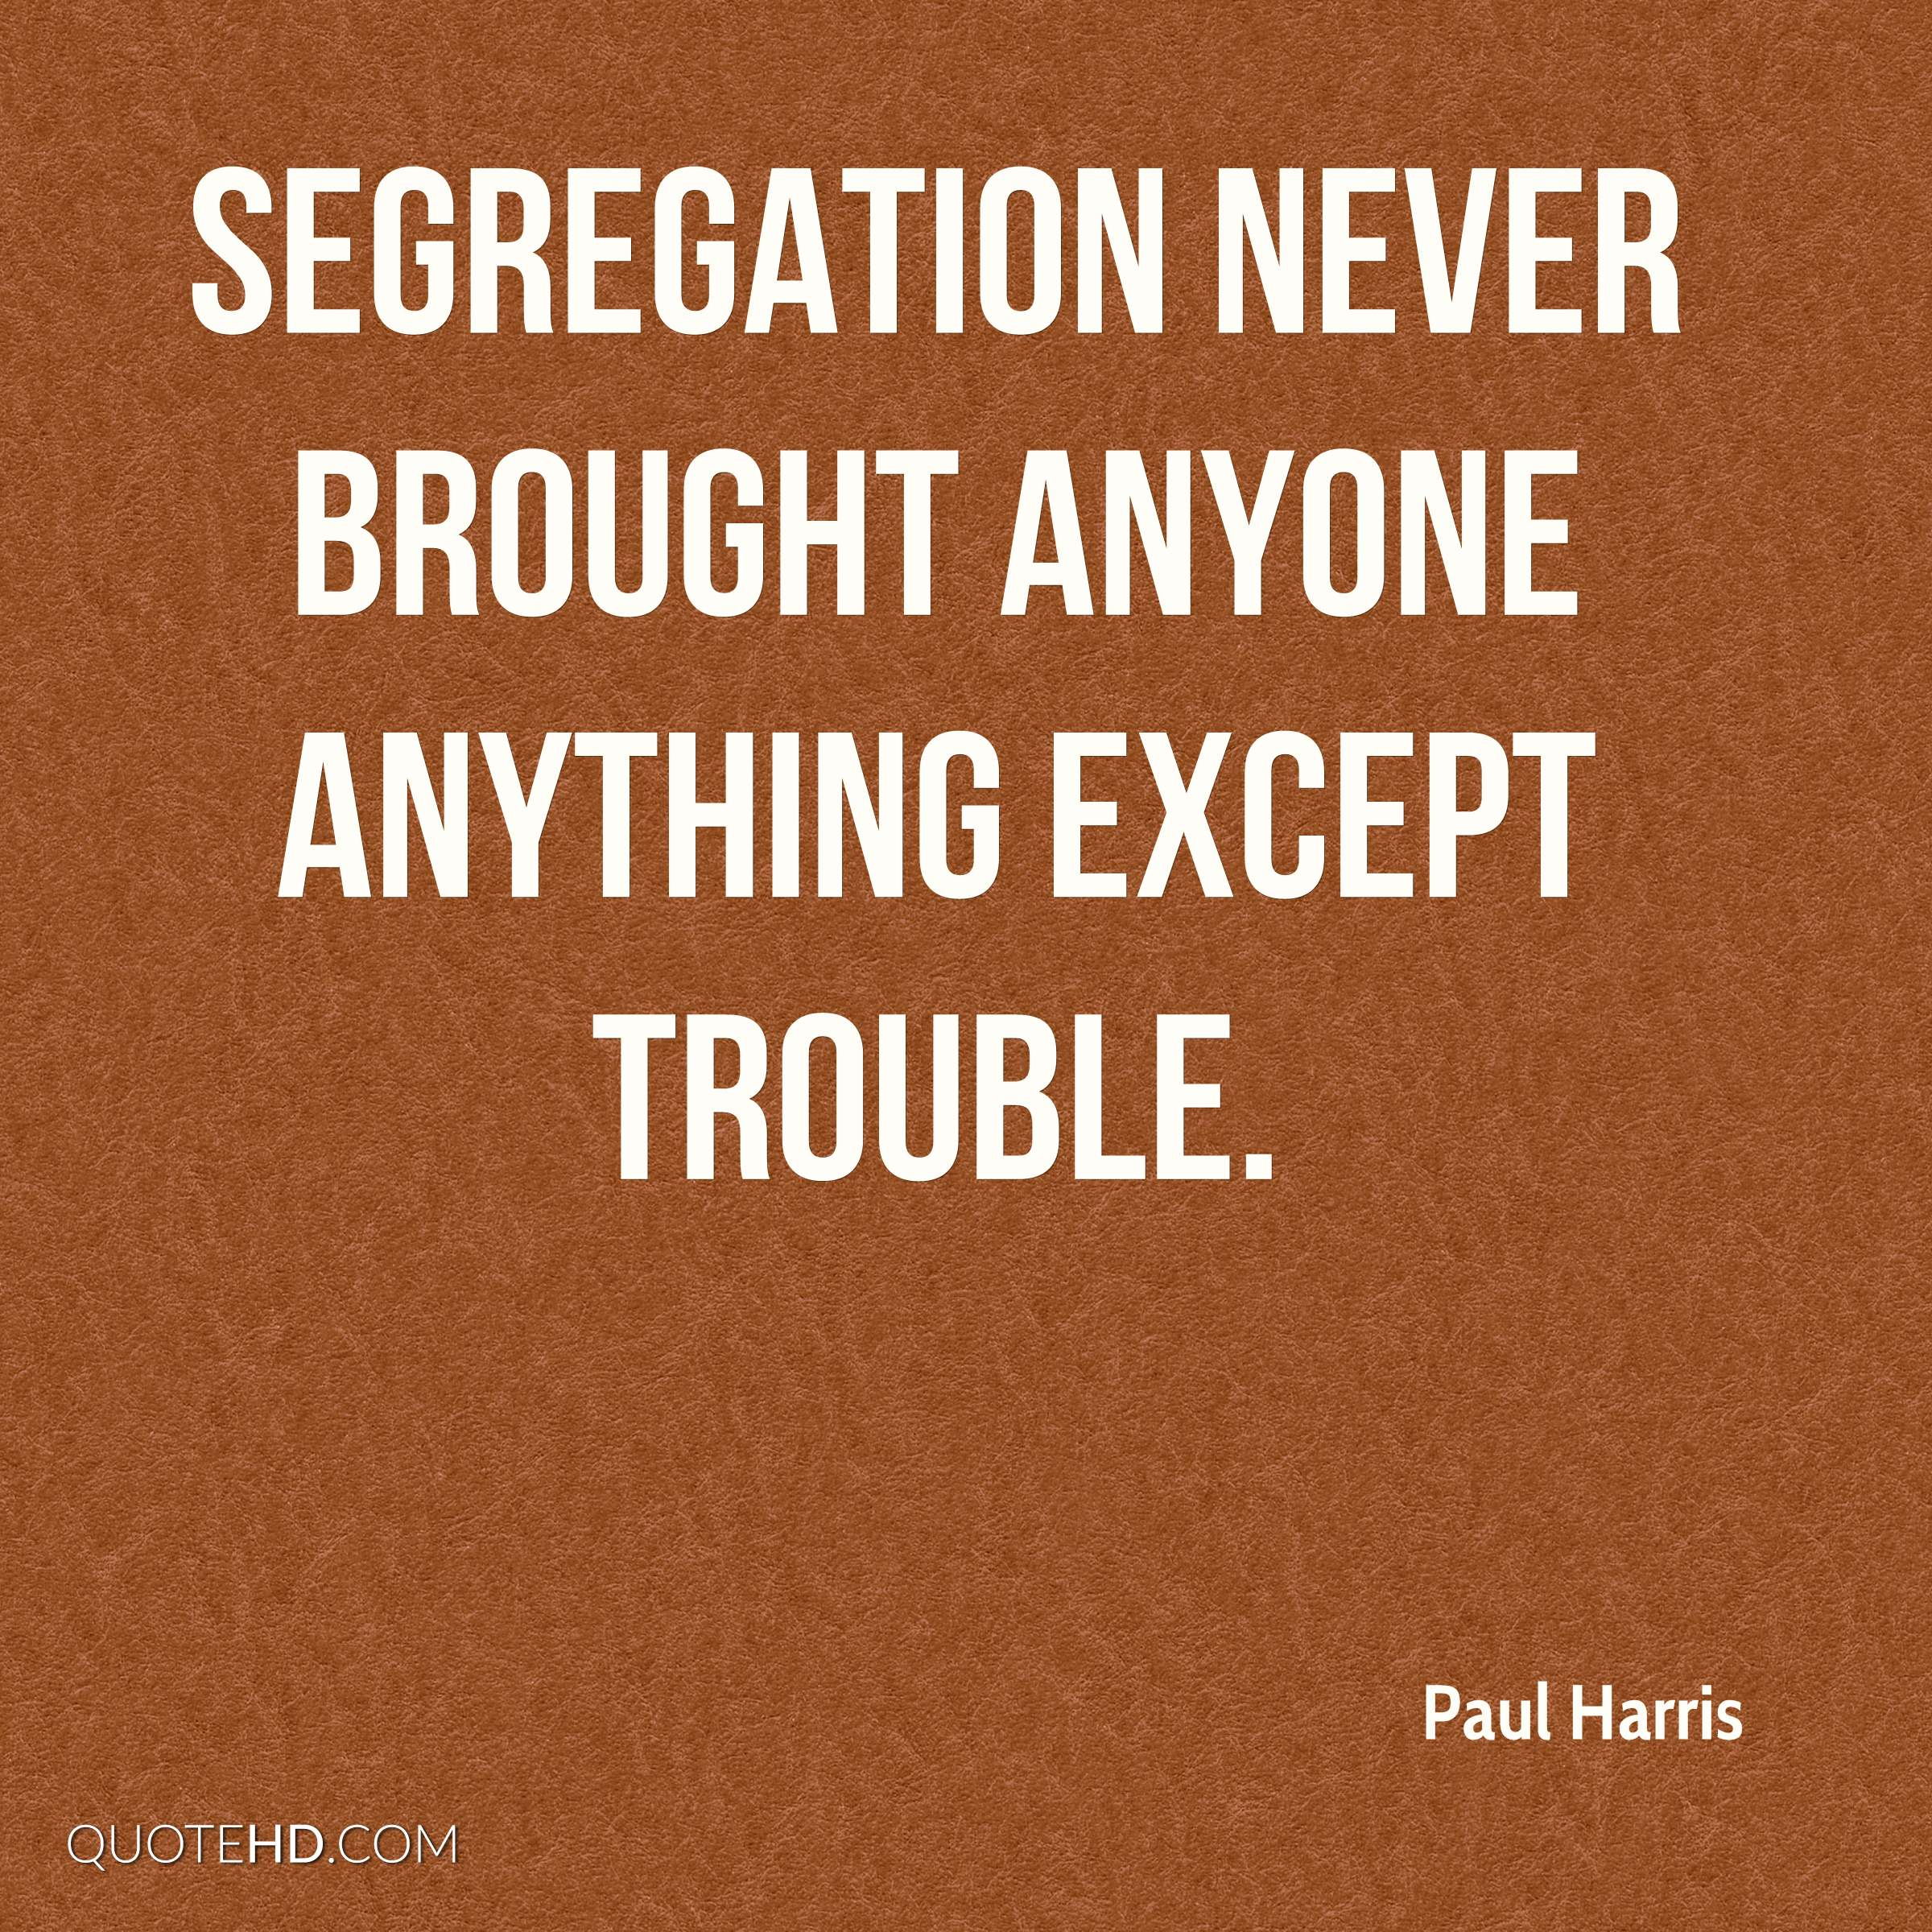 Quotescom: Famous Quotes About Segregation. QuotesGram